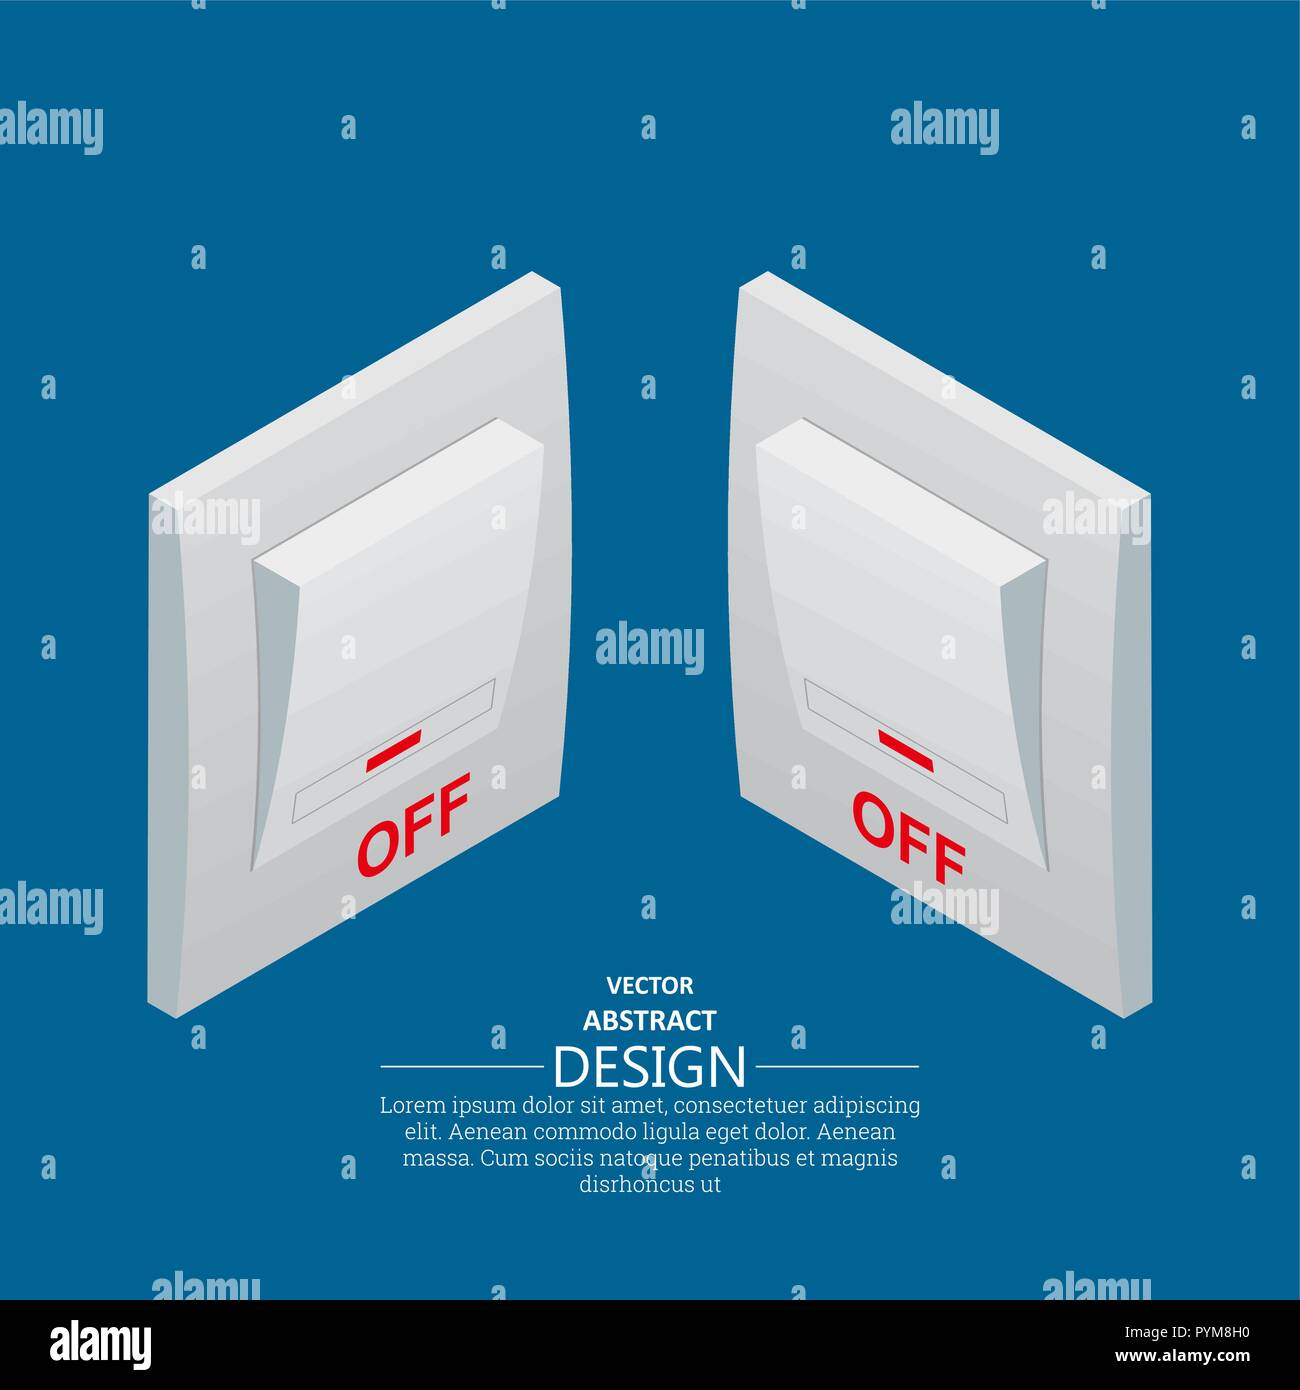 Isometric icons of electrical light wall switch in the off mode. Toggle switch. Vector element of graphic design - Stock Vector